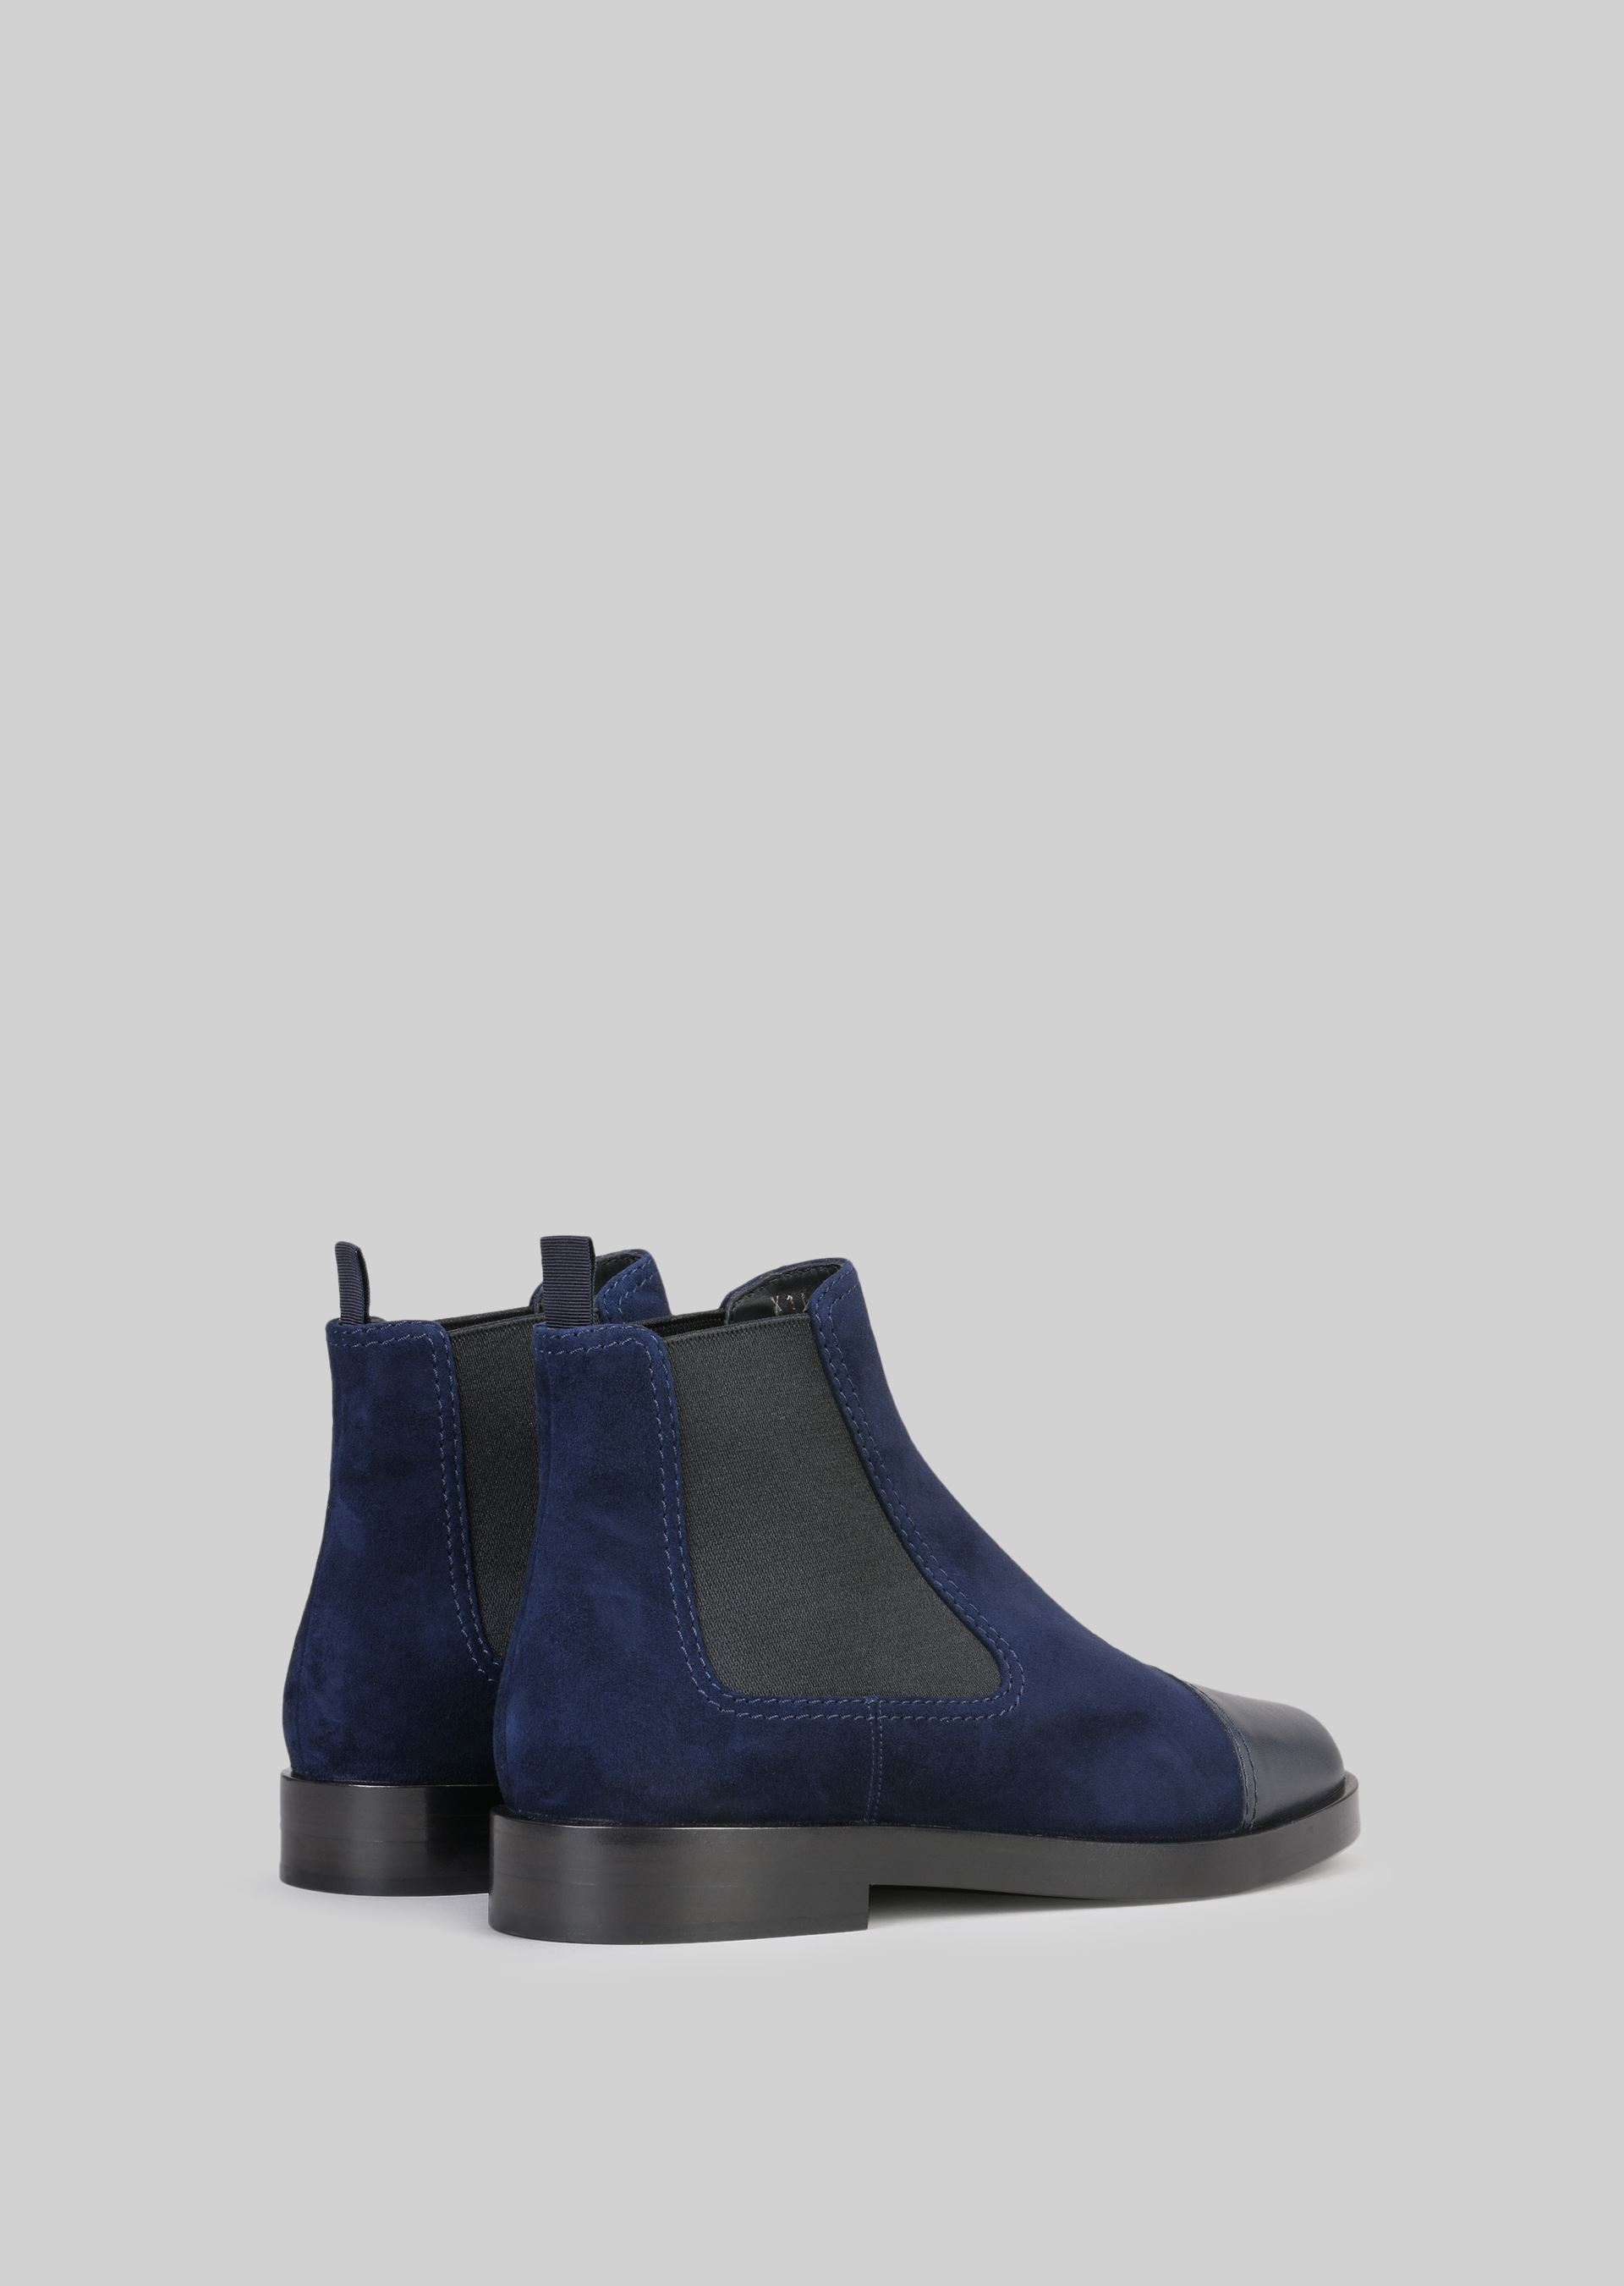 GIORGIO ARMANI SUEDE BEATLE BOOTS Ankle Boots D d